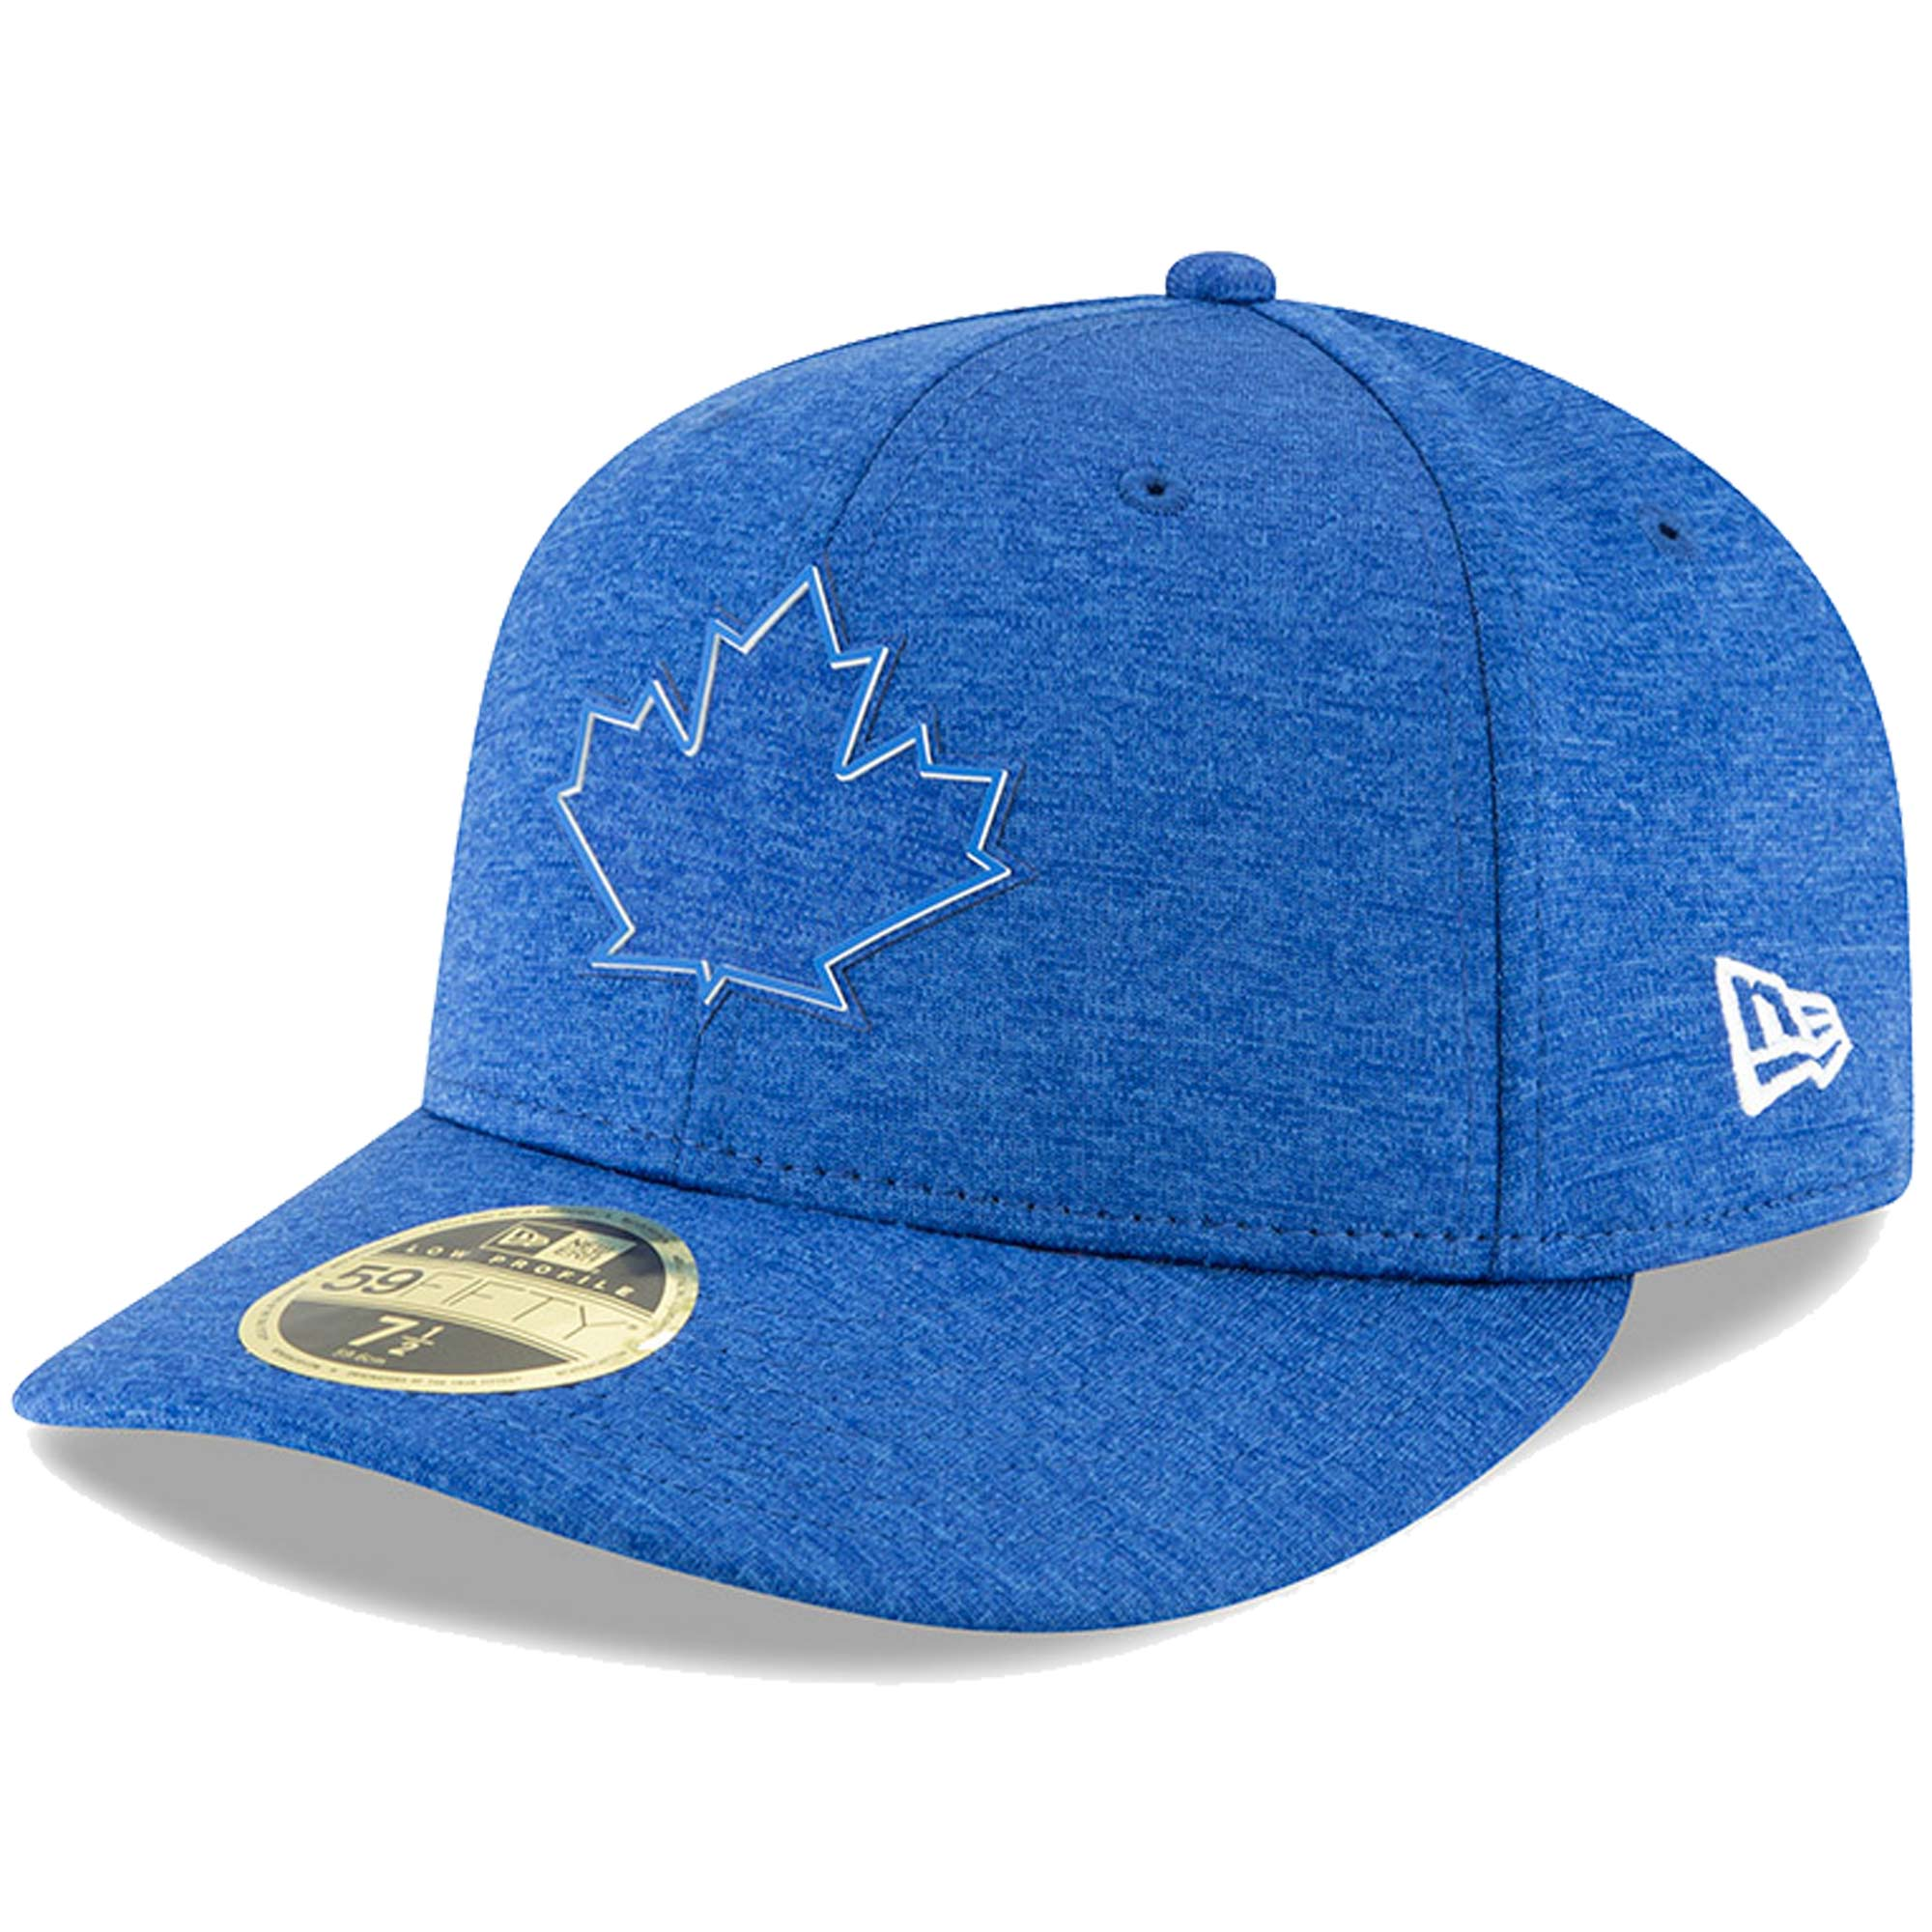 Toronto Blue Jays New Era 2018 Clubhouse Collection Low Profile 59FIFTY Fitted Hat - Royal